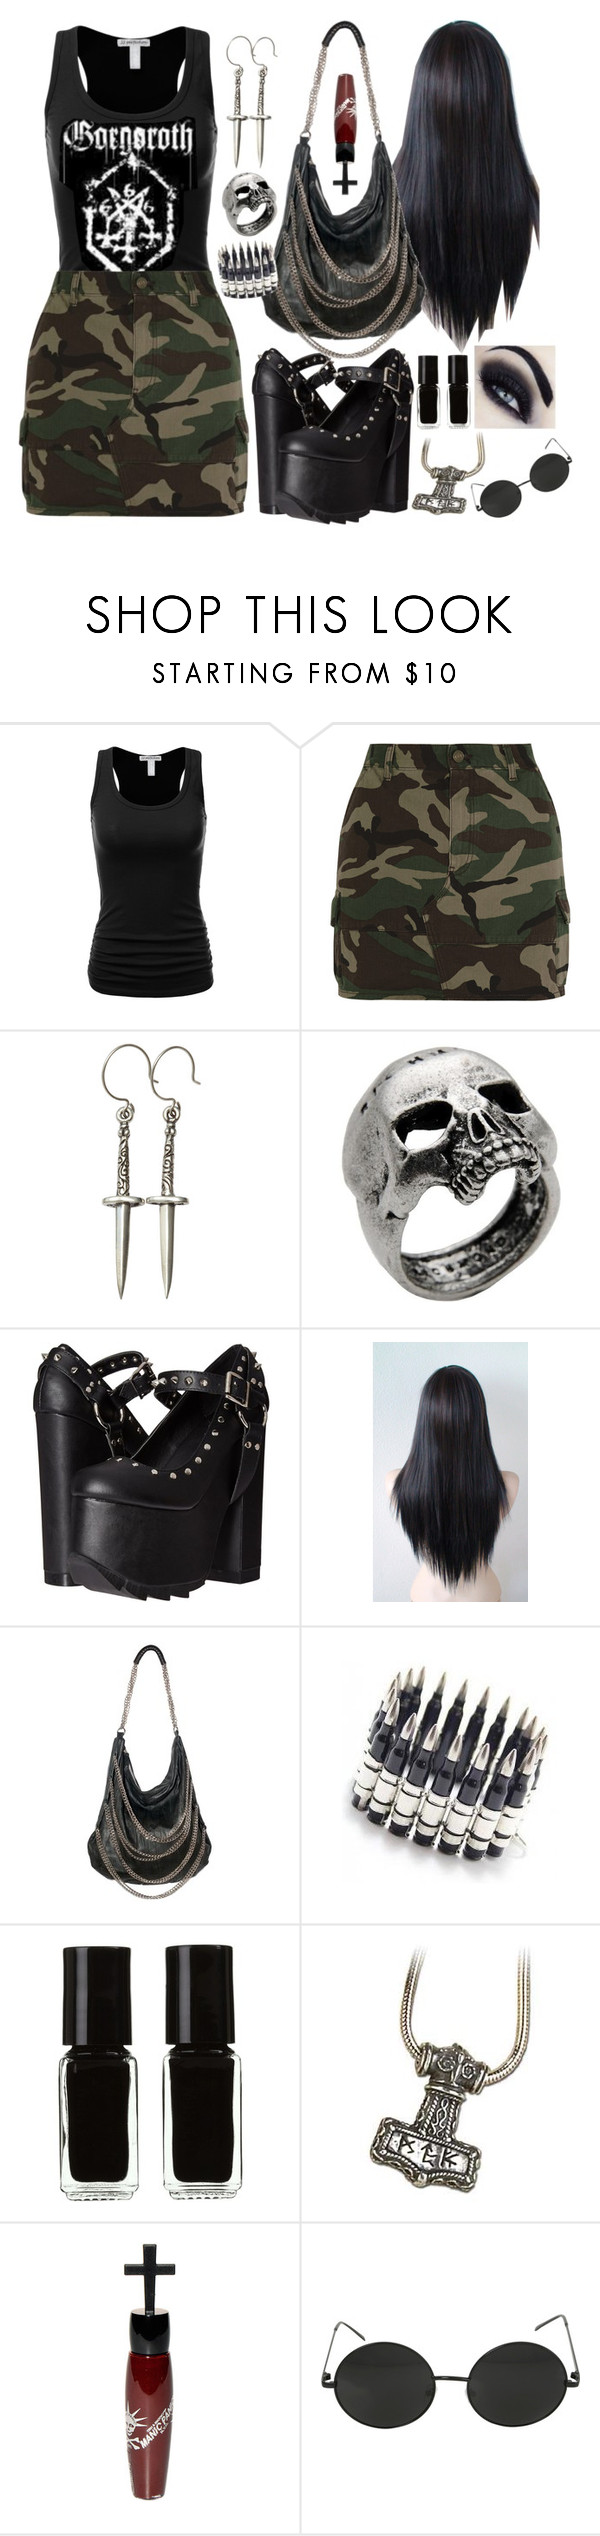 """Gorgoroth"" by jeanettebeatrice ❤ liked on Polyvore featuring Yves Saint Laurent, Femme Metale Jewelry, John Richmond, Demonia, Magali Pascal, Bullet, The New Black, Manic Panic NYC and Hot Topic"